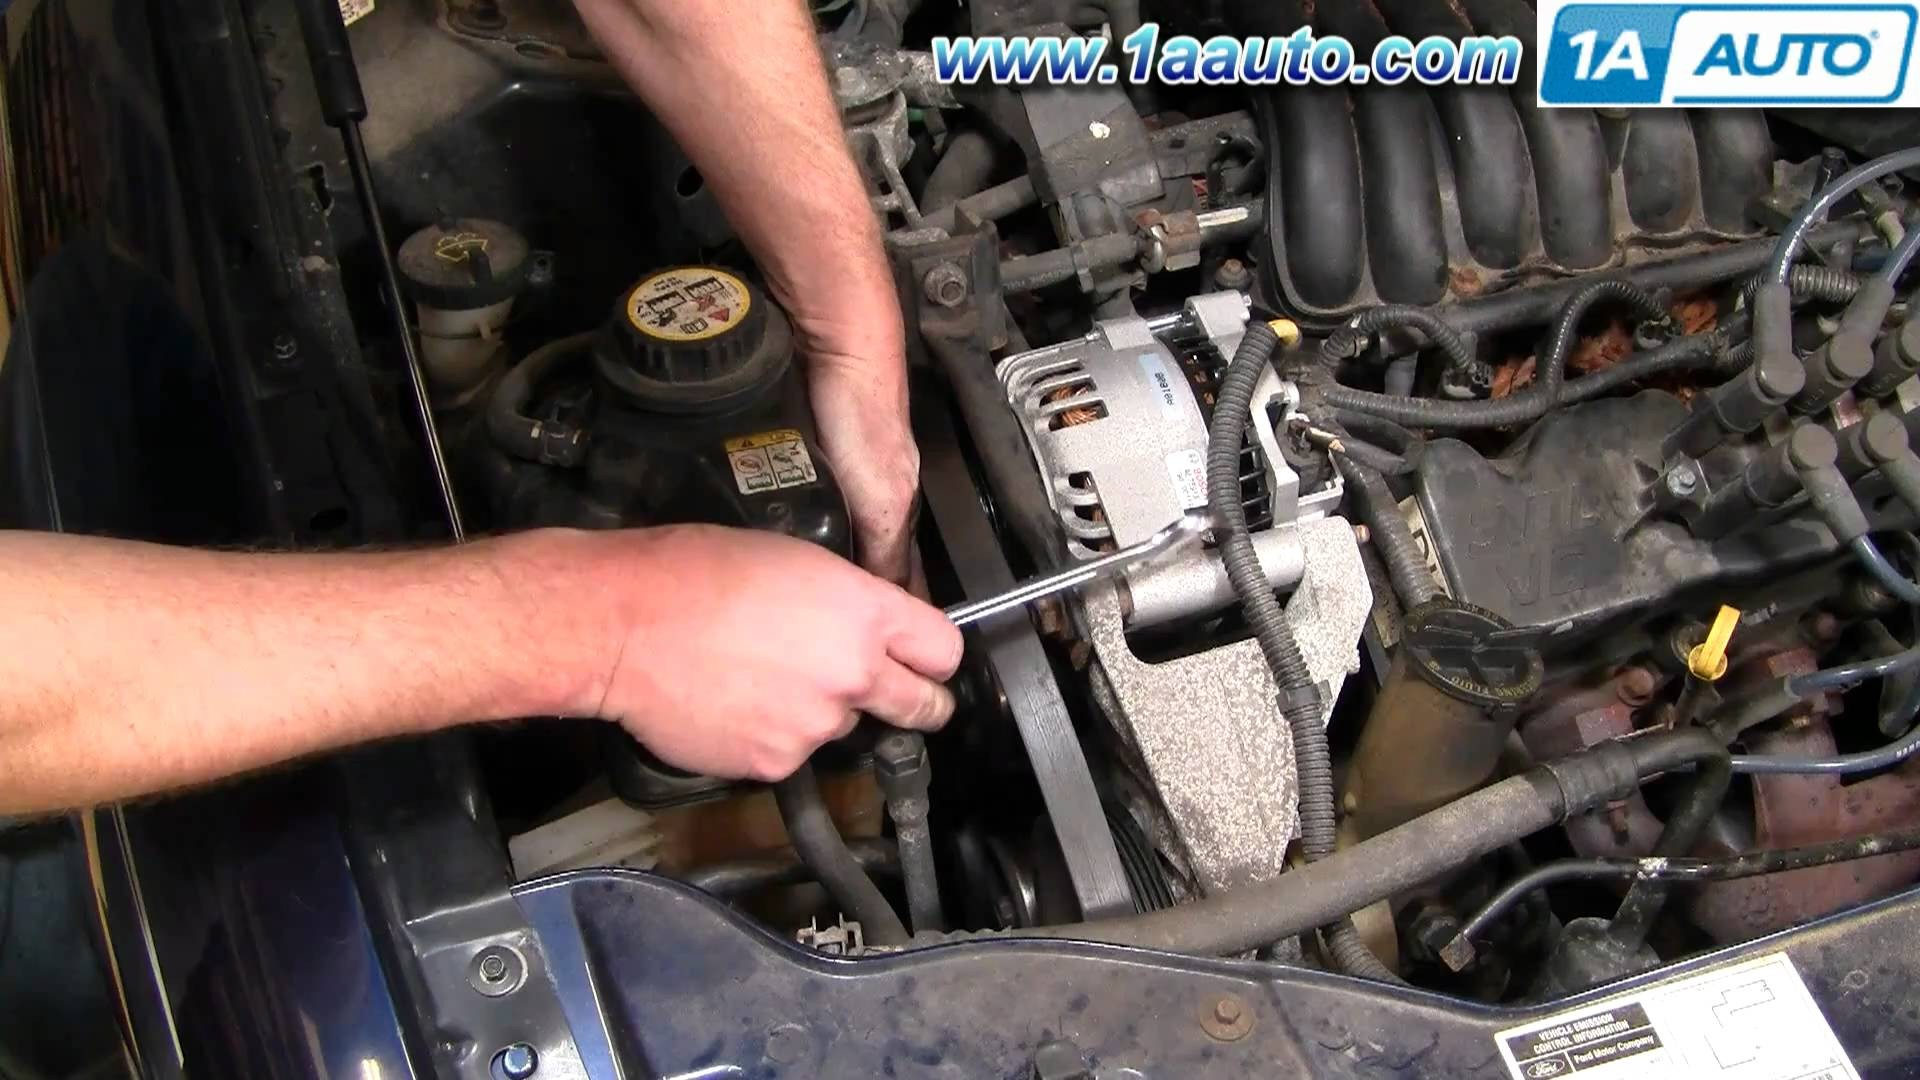 1999 Mercury Cougar Engine Diagram How to Install Replace Serpentine Belt Idler Pulley ford Taurus 3 0l Of 1999 Mercury Cougar Engine Diagram